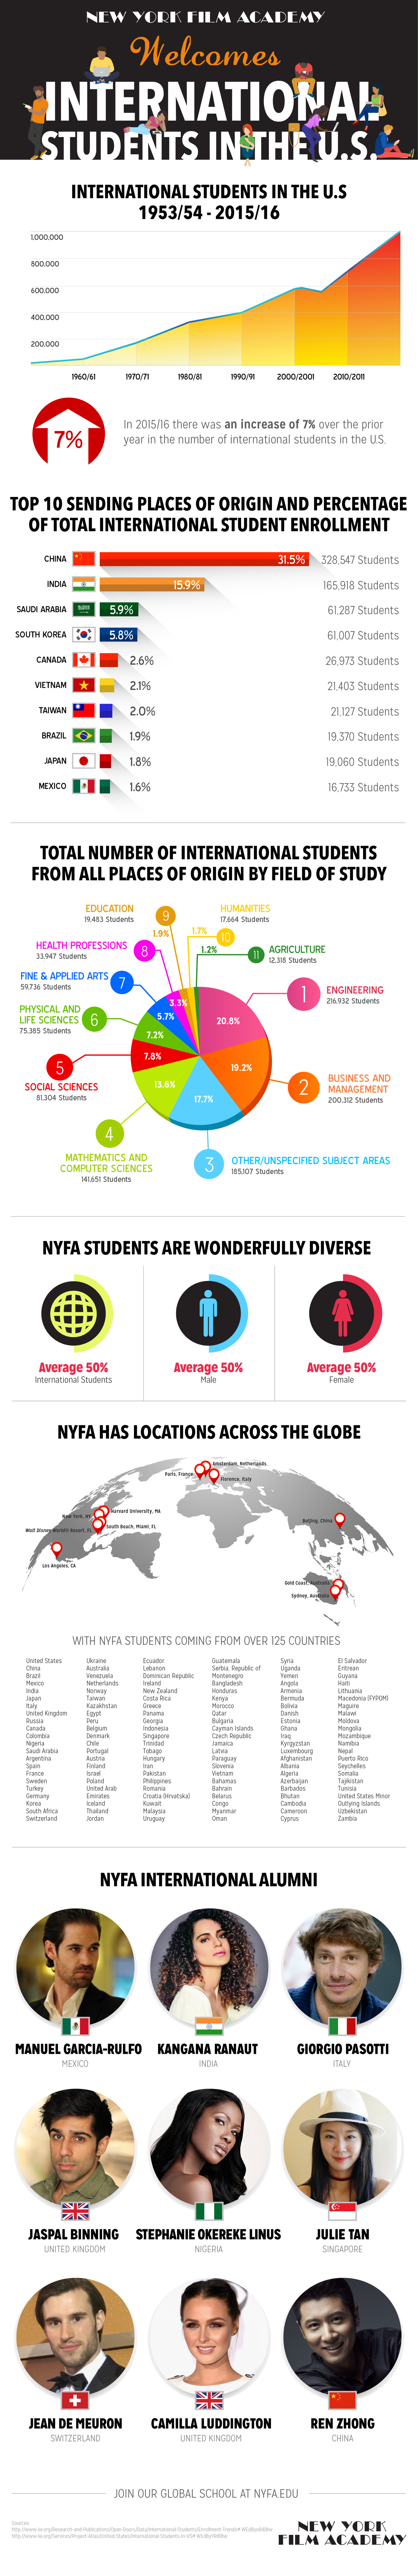 international-education-infographic3c-01